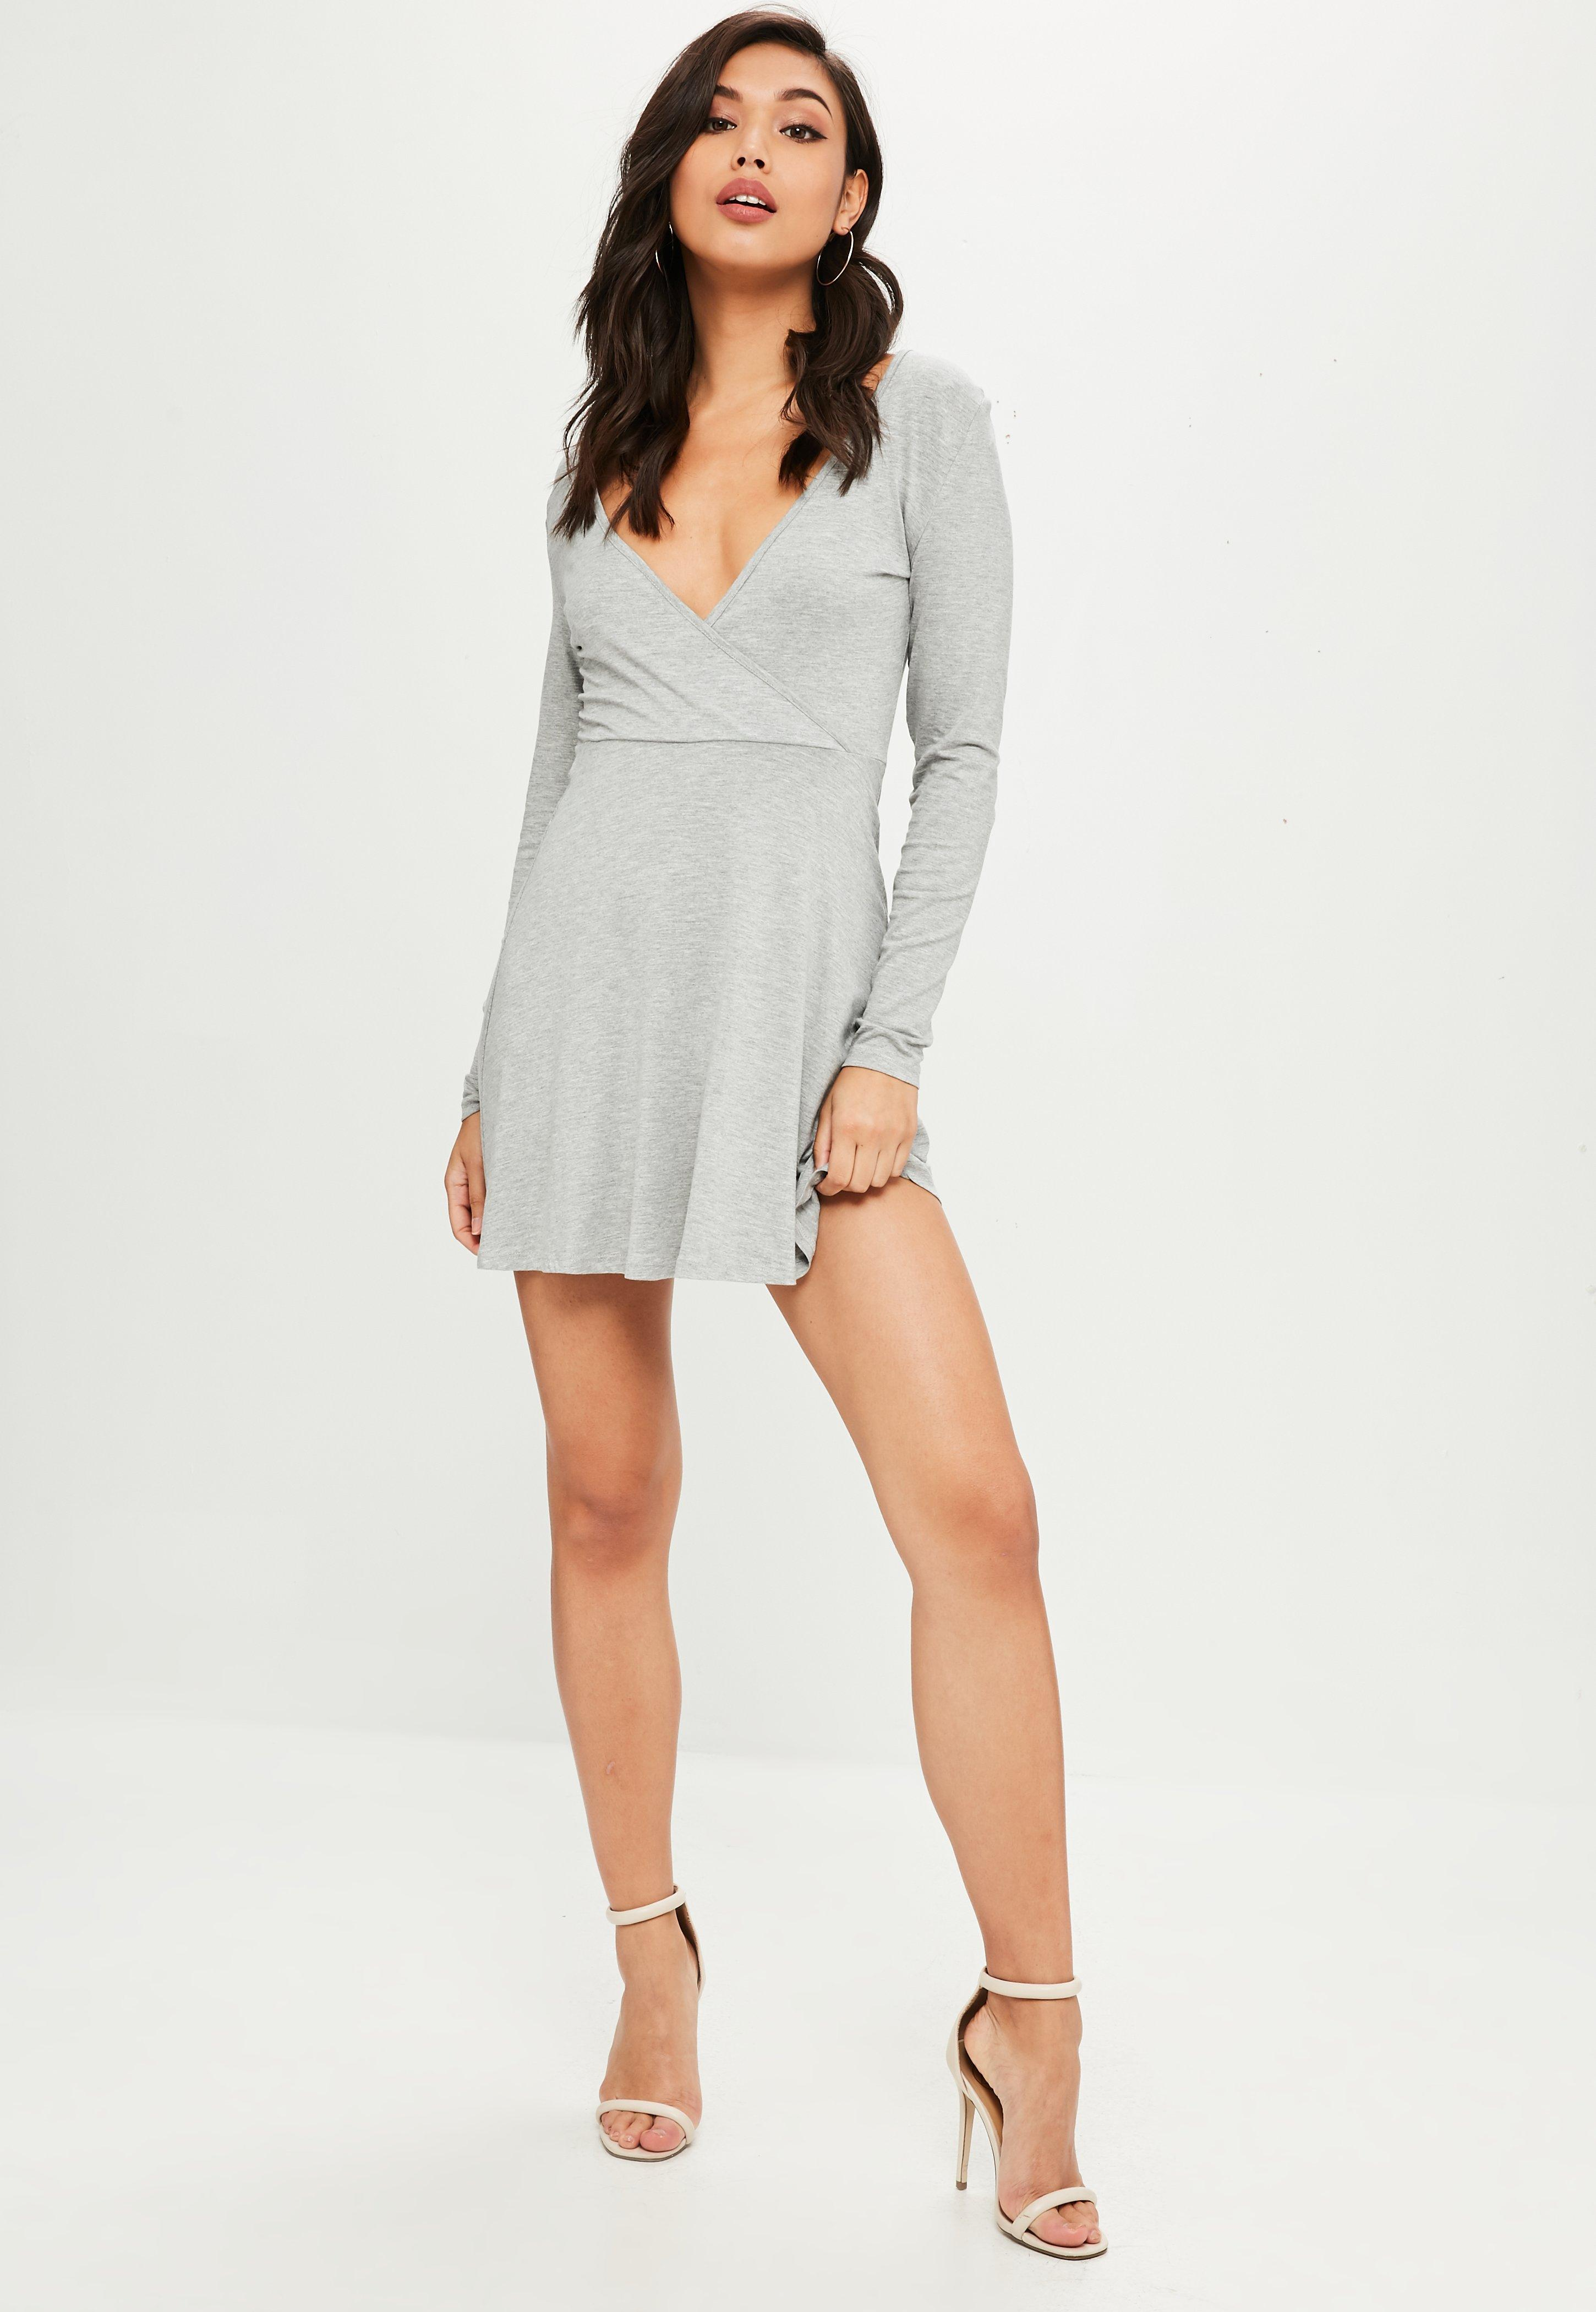 680abe2a4f50 Lyst - Missguided Grey Long Sleeve Jersey Wrap Skater Dress in Gray